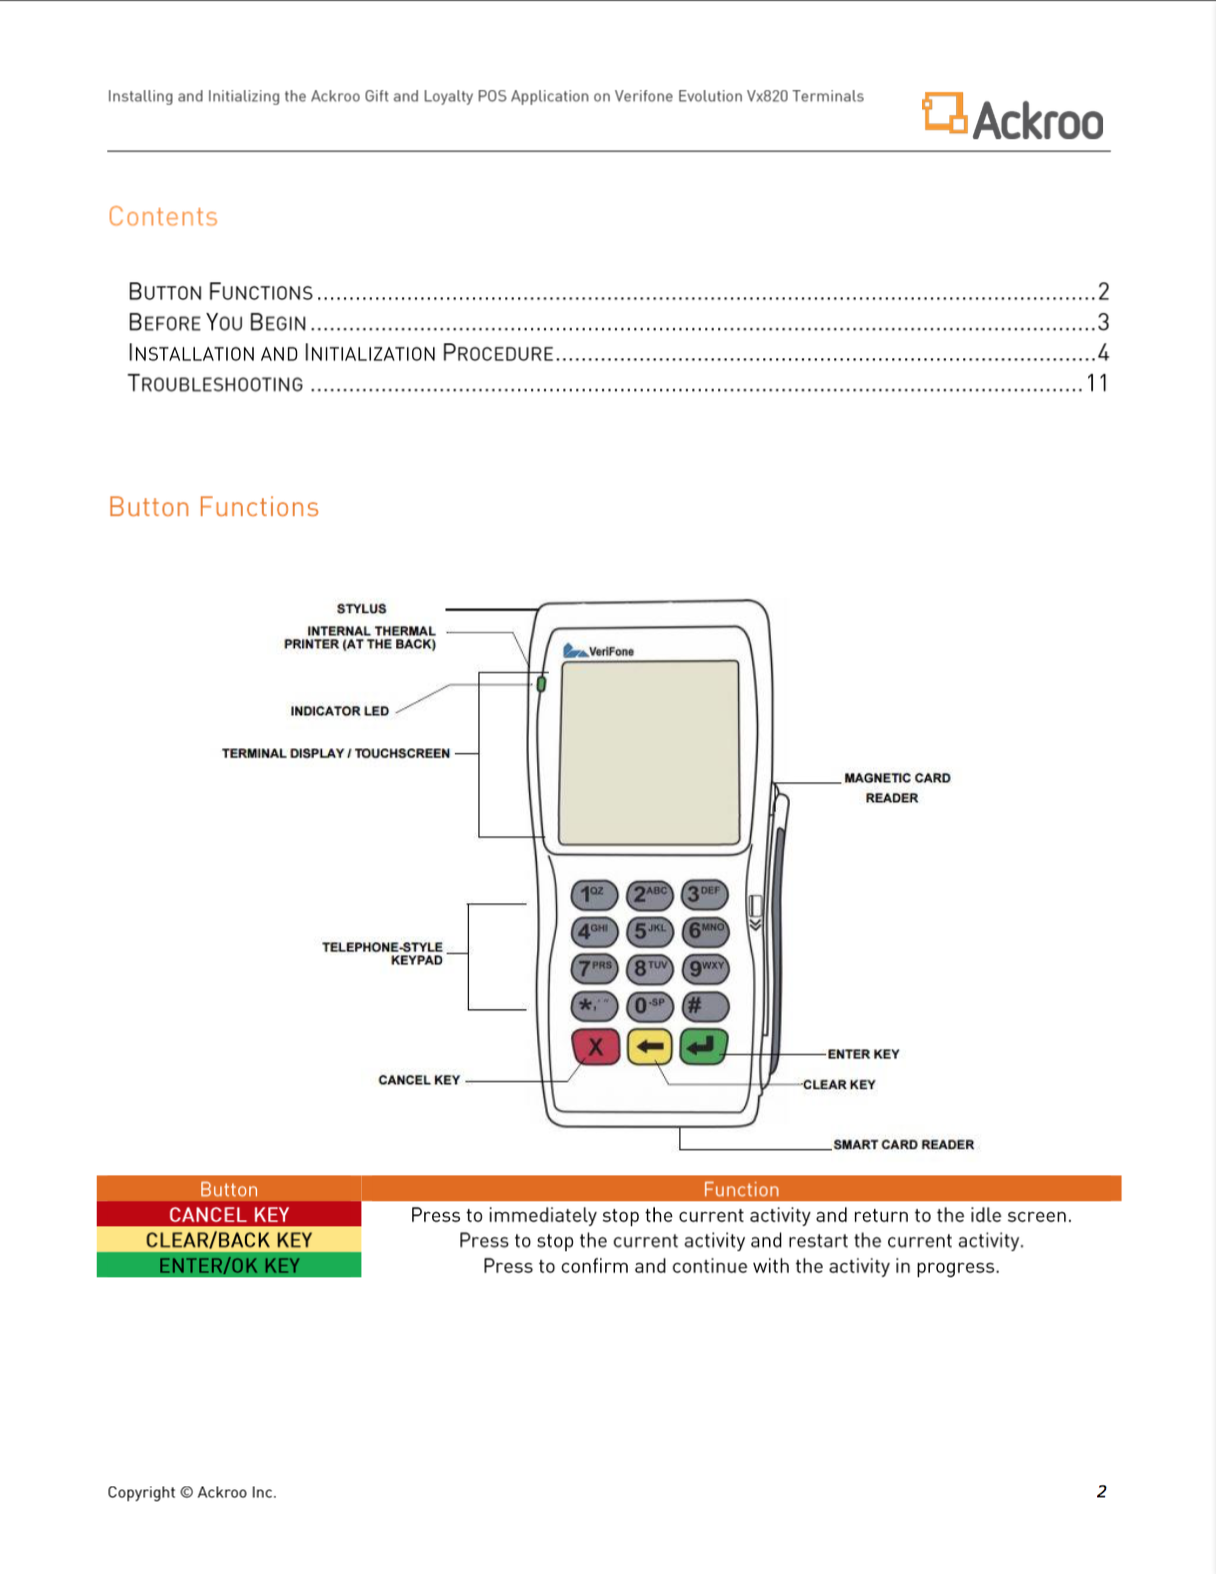 Verifone_Evolution_Vx820_Ackapp_installation_guide_-_Page_2.png